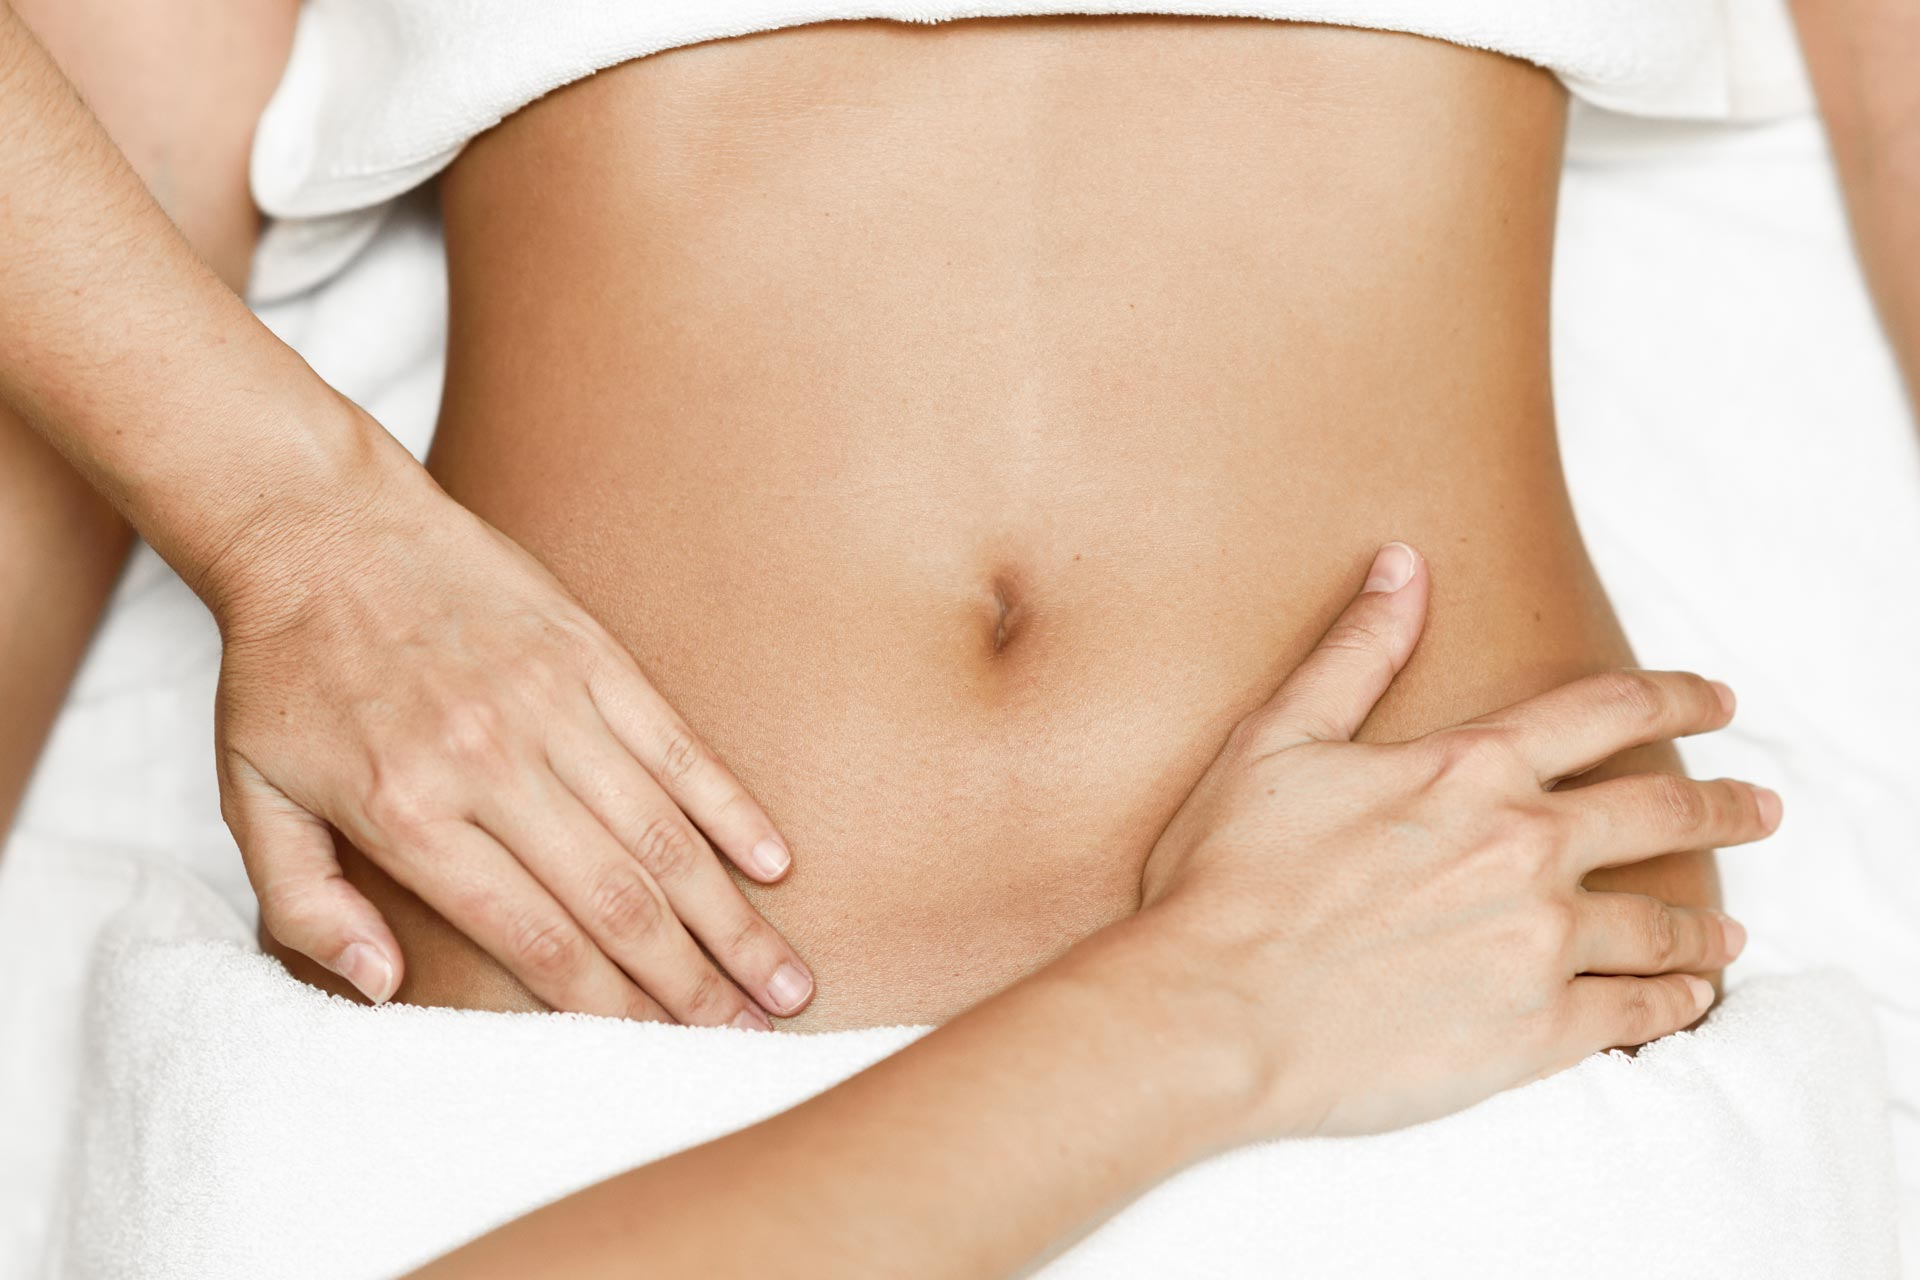 What Areas Can CoolSculpting Treat?